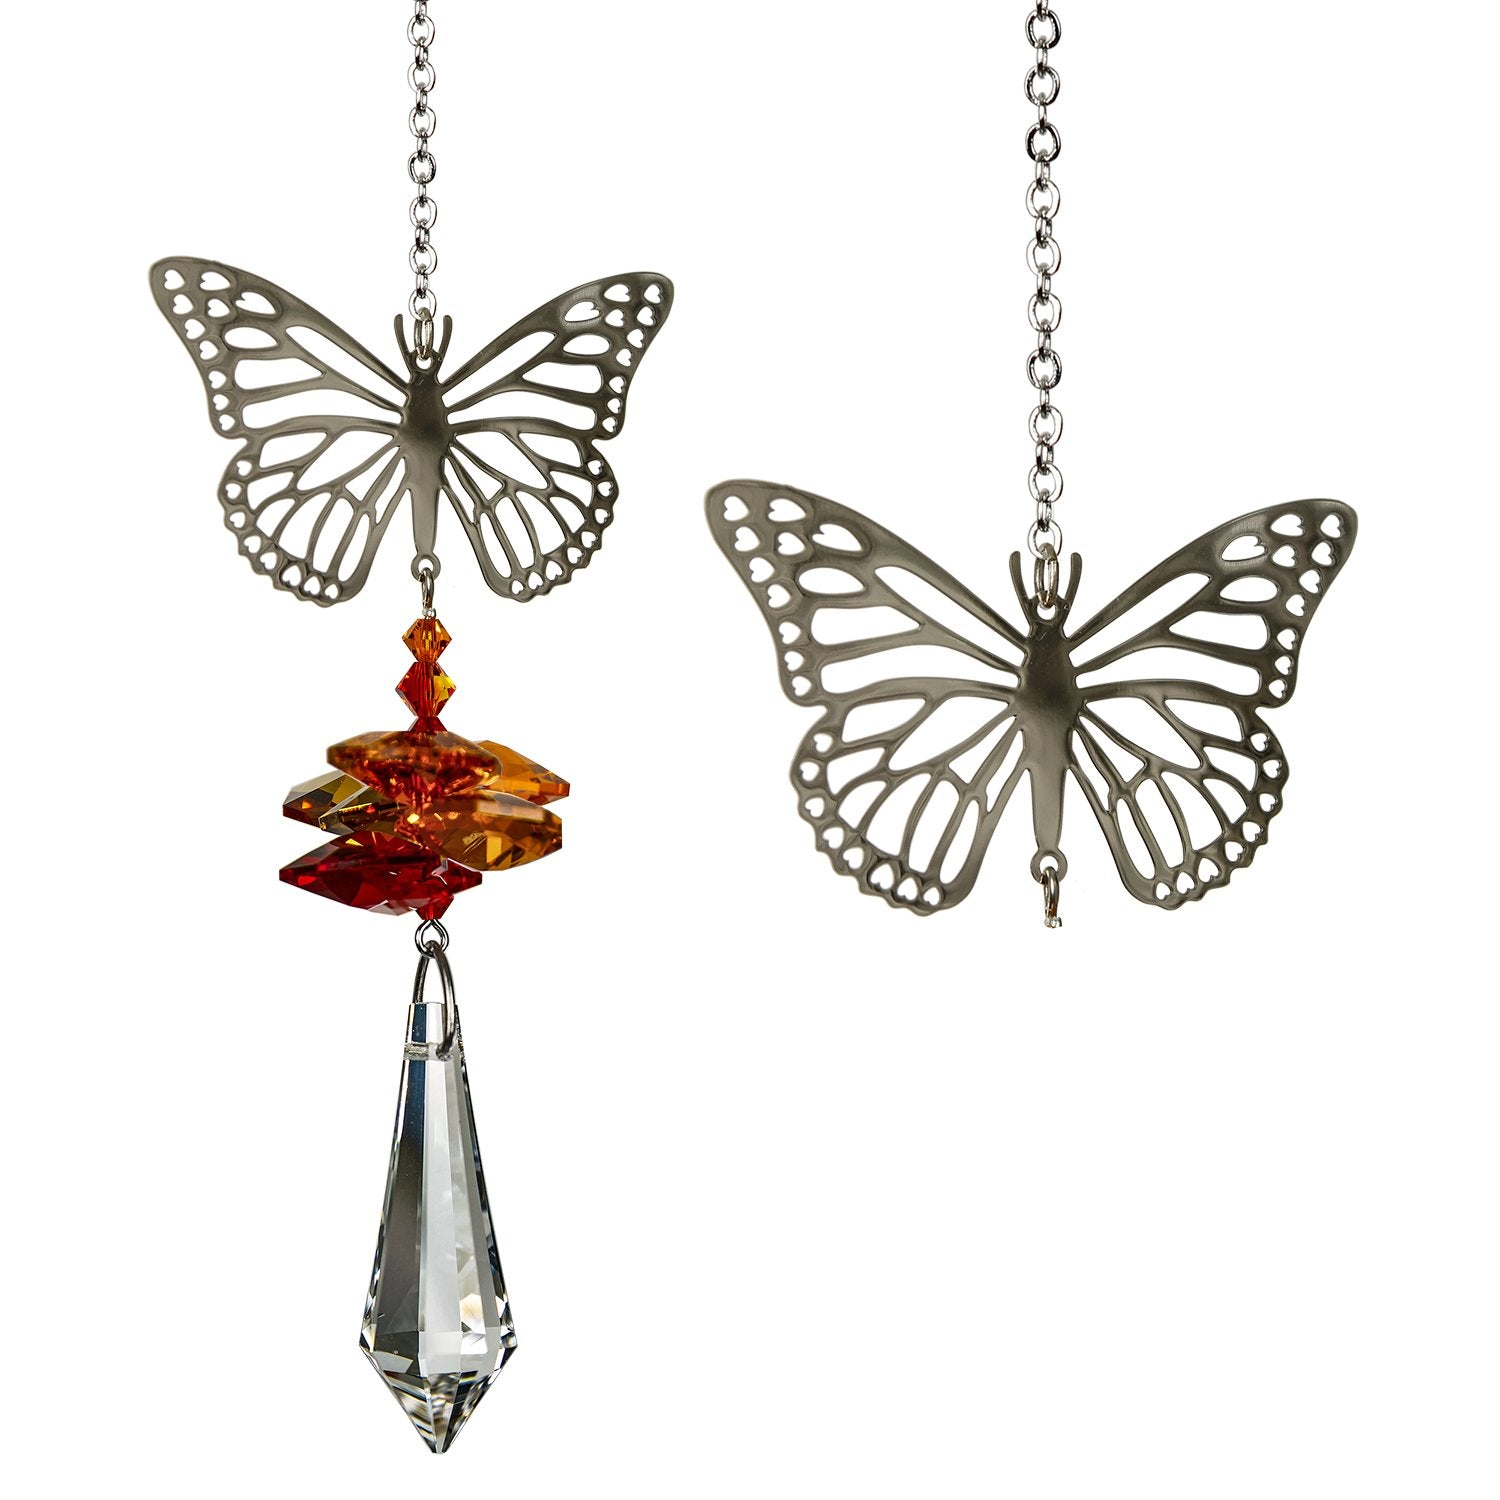 Crystal Fantasy Suncatcher - Butterfly main image